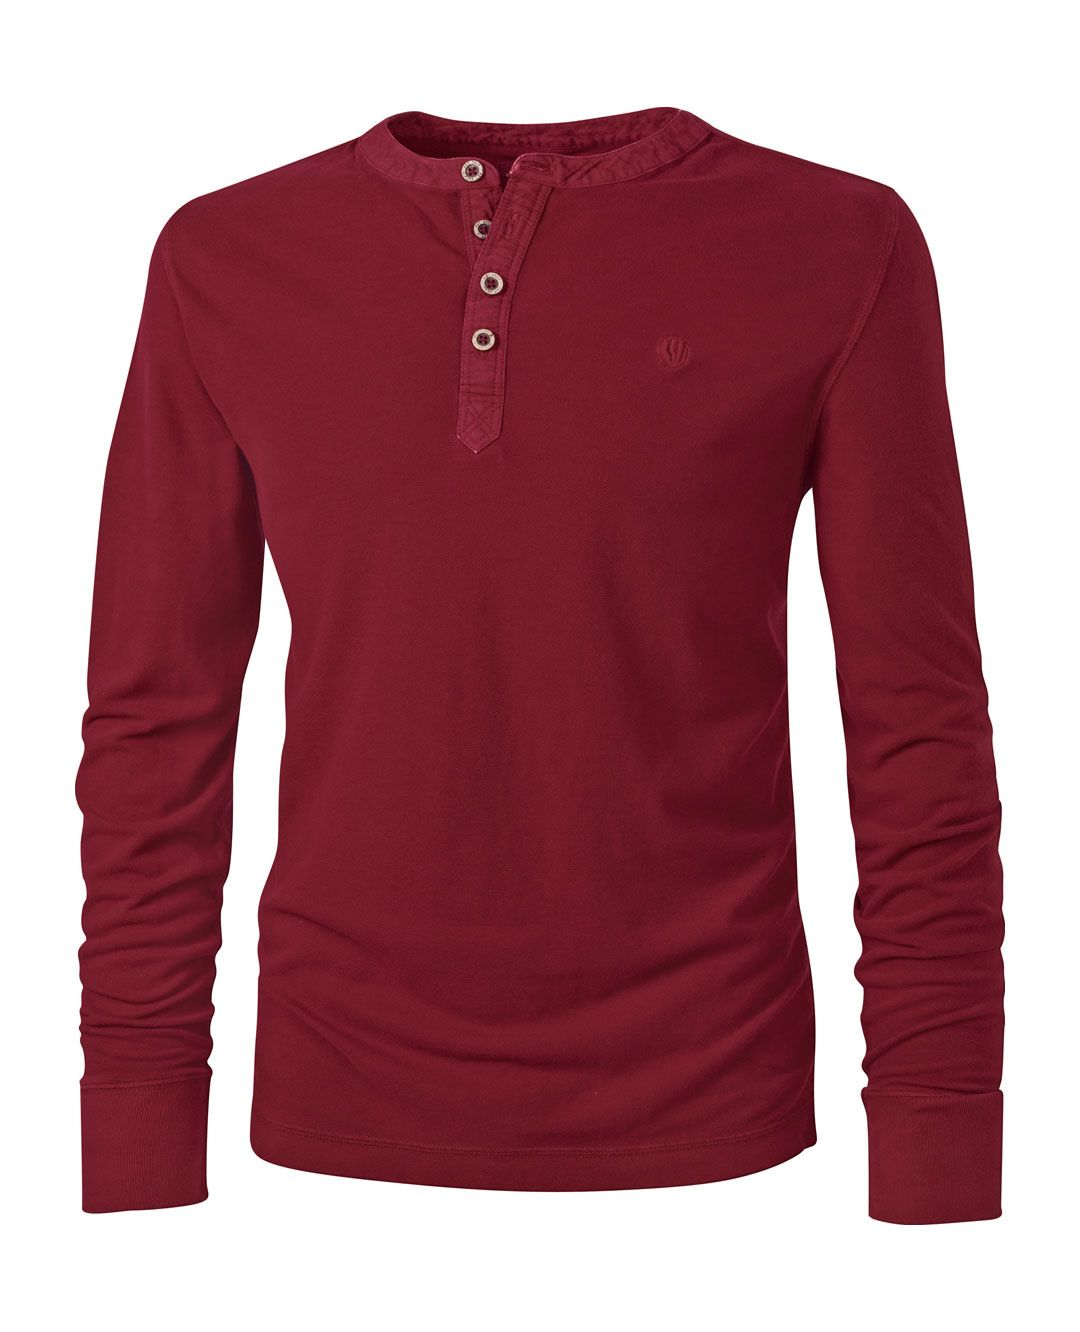 Large image of Scariff Henley T-Shirt - opens in a new window